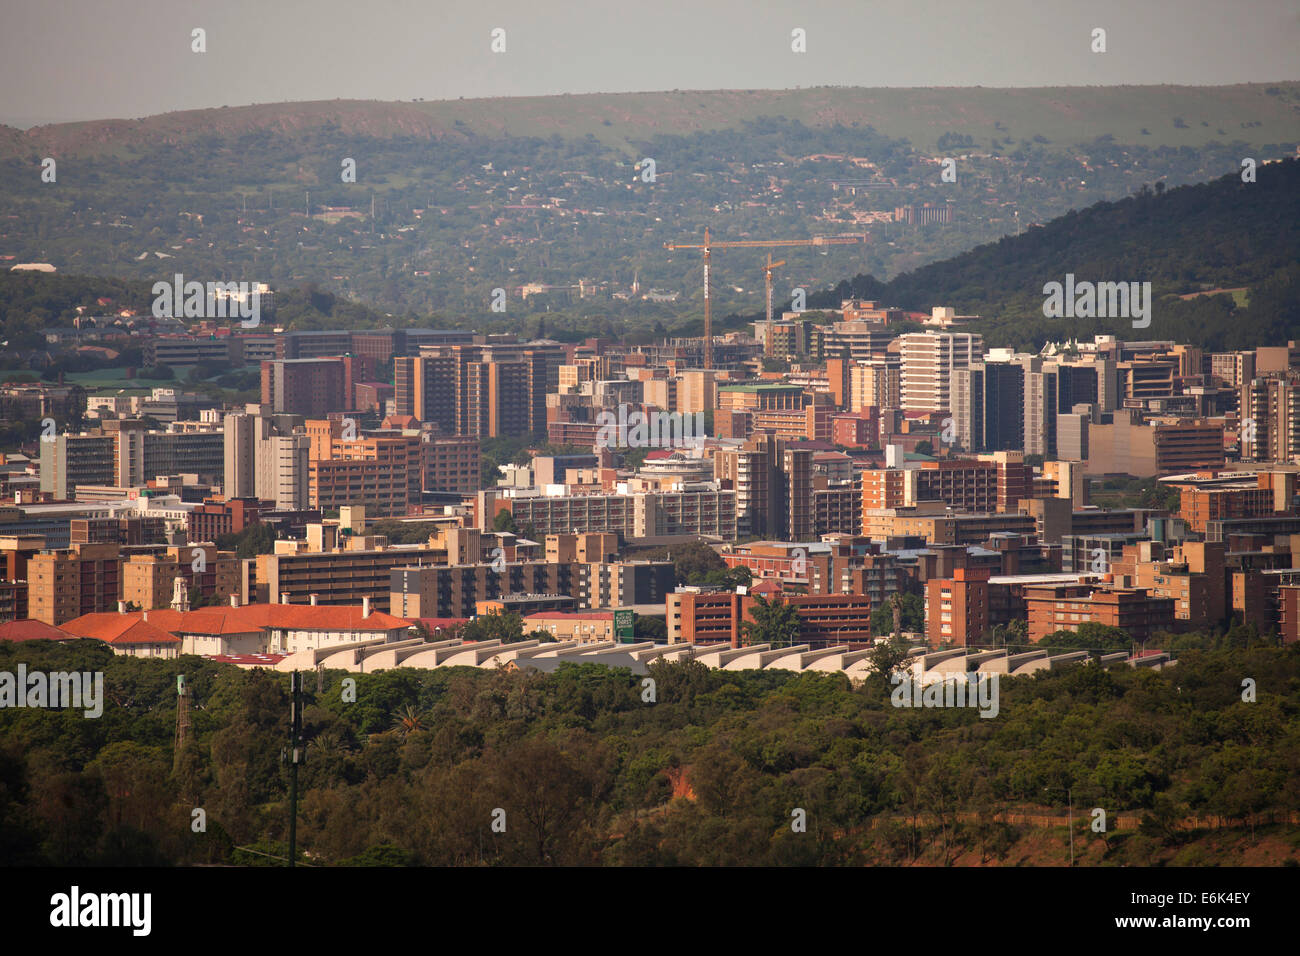 View of the city of Pretoria, Gauteng, South Africa - Stock Image